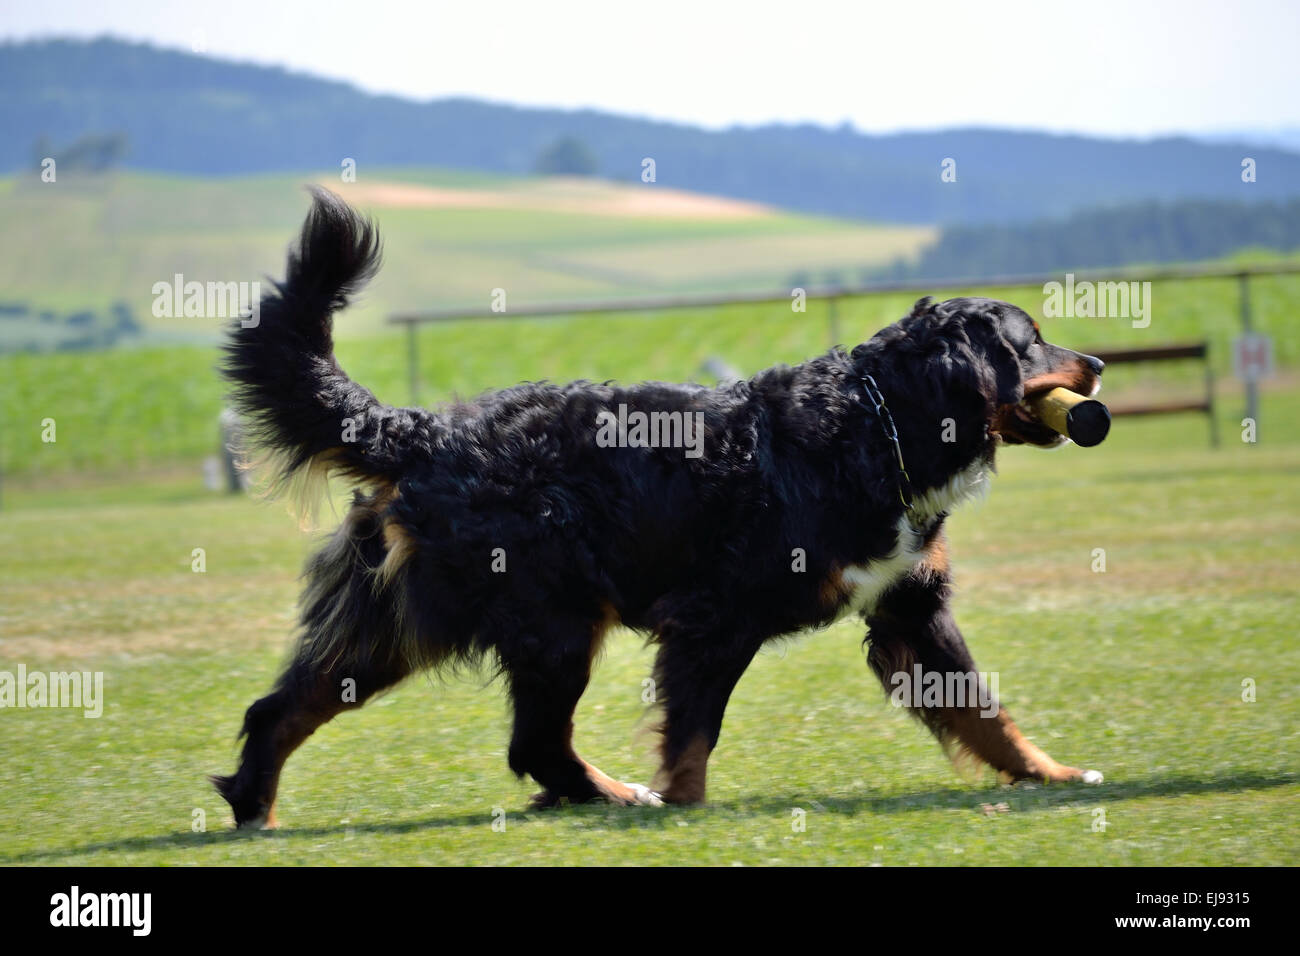 Bernese Mountain Dog retrieves object - Stock Image